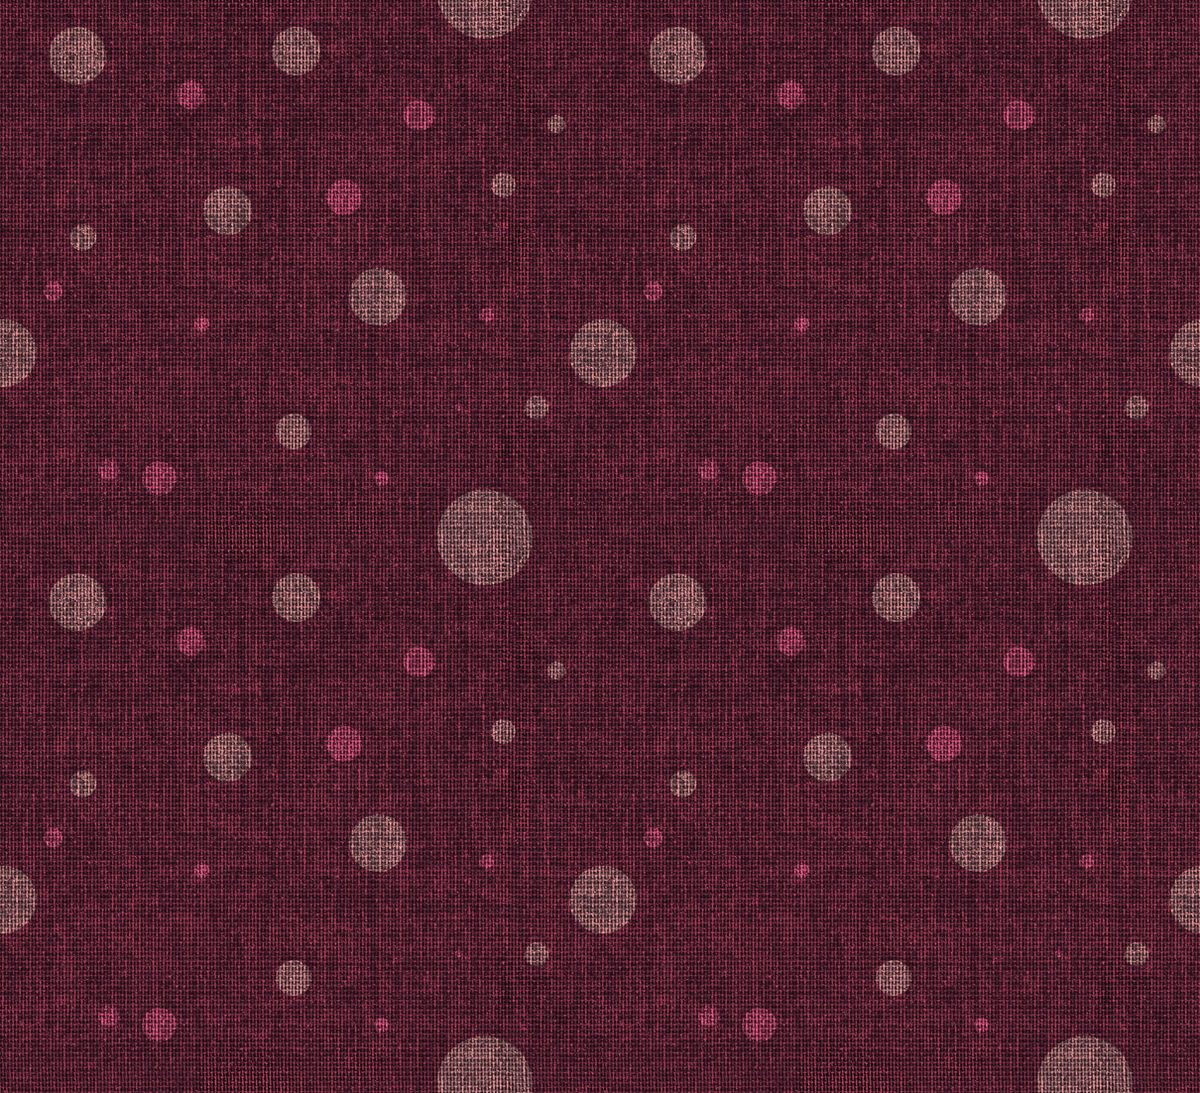 Free high resolution textures, backgrounds and patterns. Sorted by  categories, colors and tags. Free for commercial and person… | Canvas  texture, Texture, Dark pink